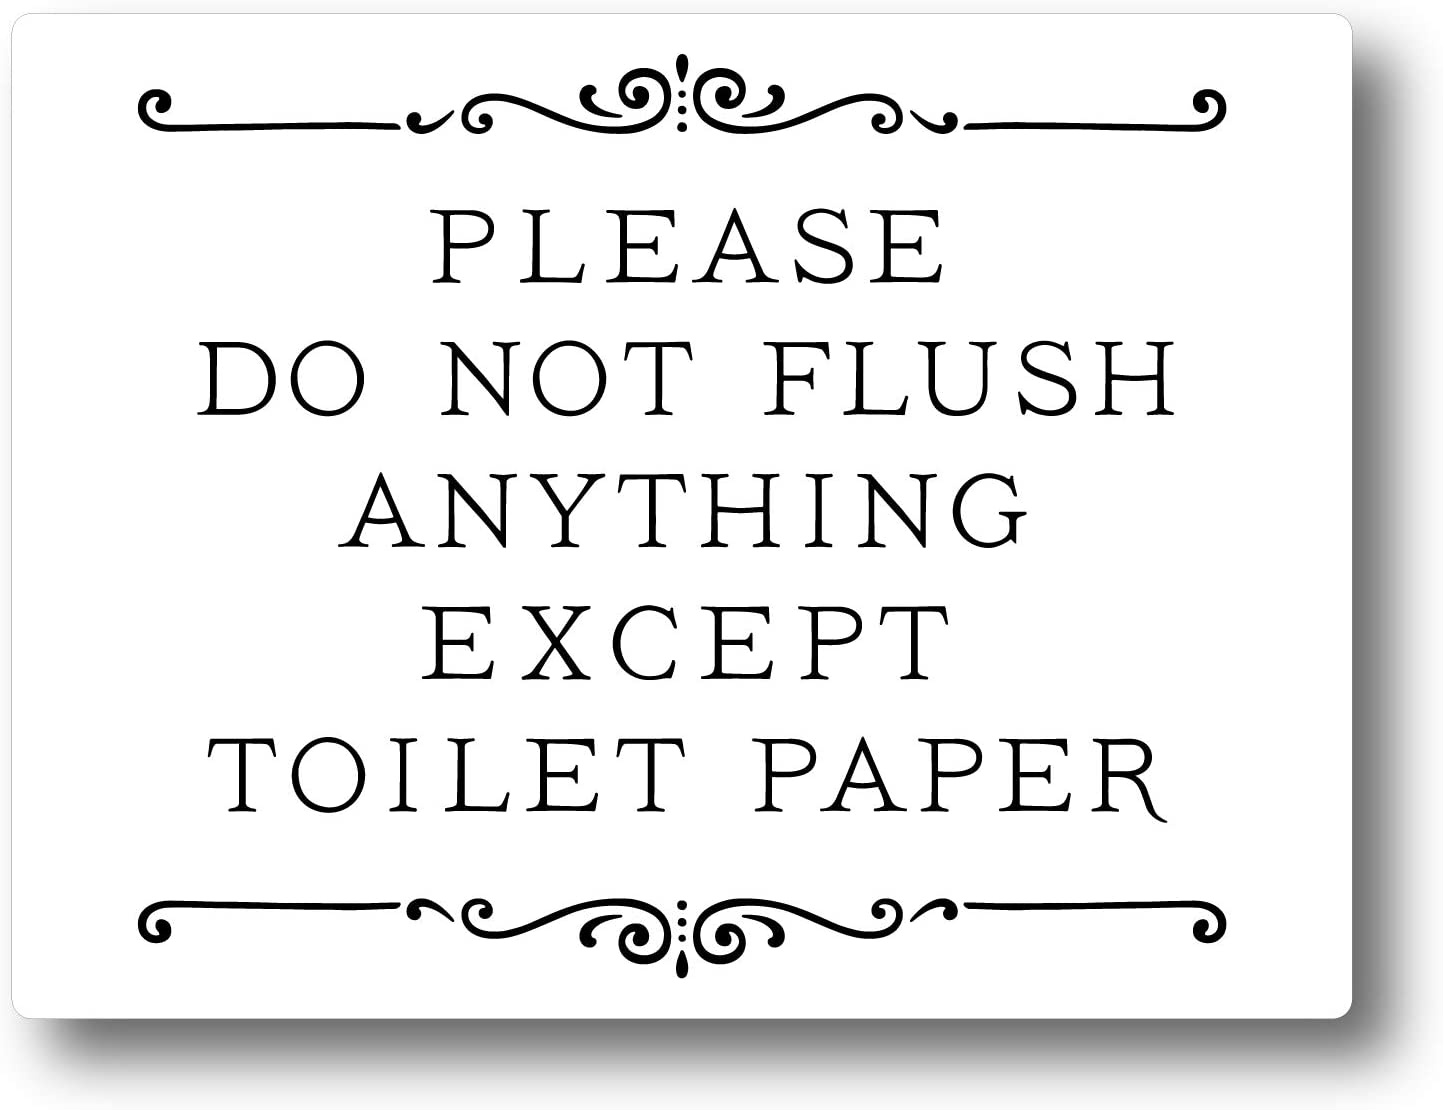 Please Do Not Flush Anything Except Toilet Paper Sign (White)